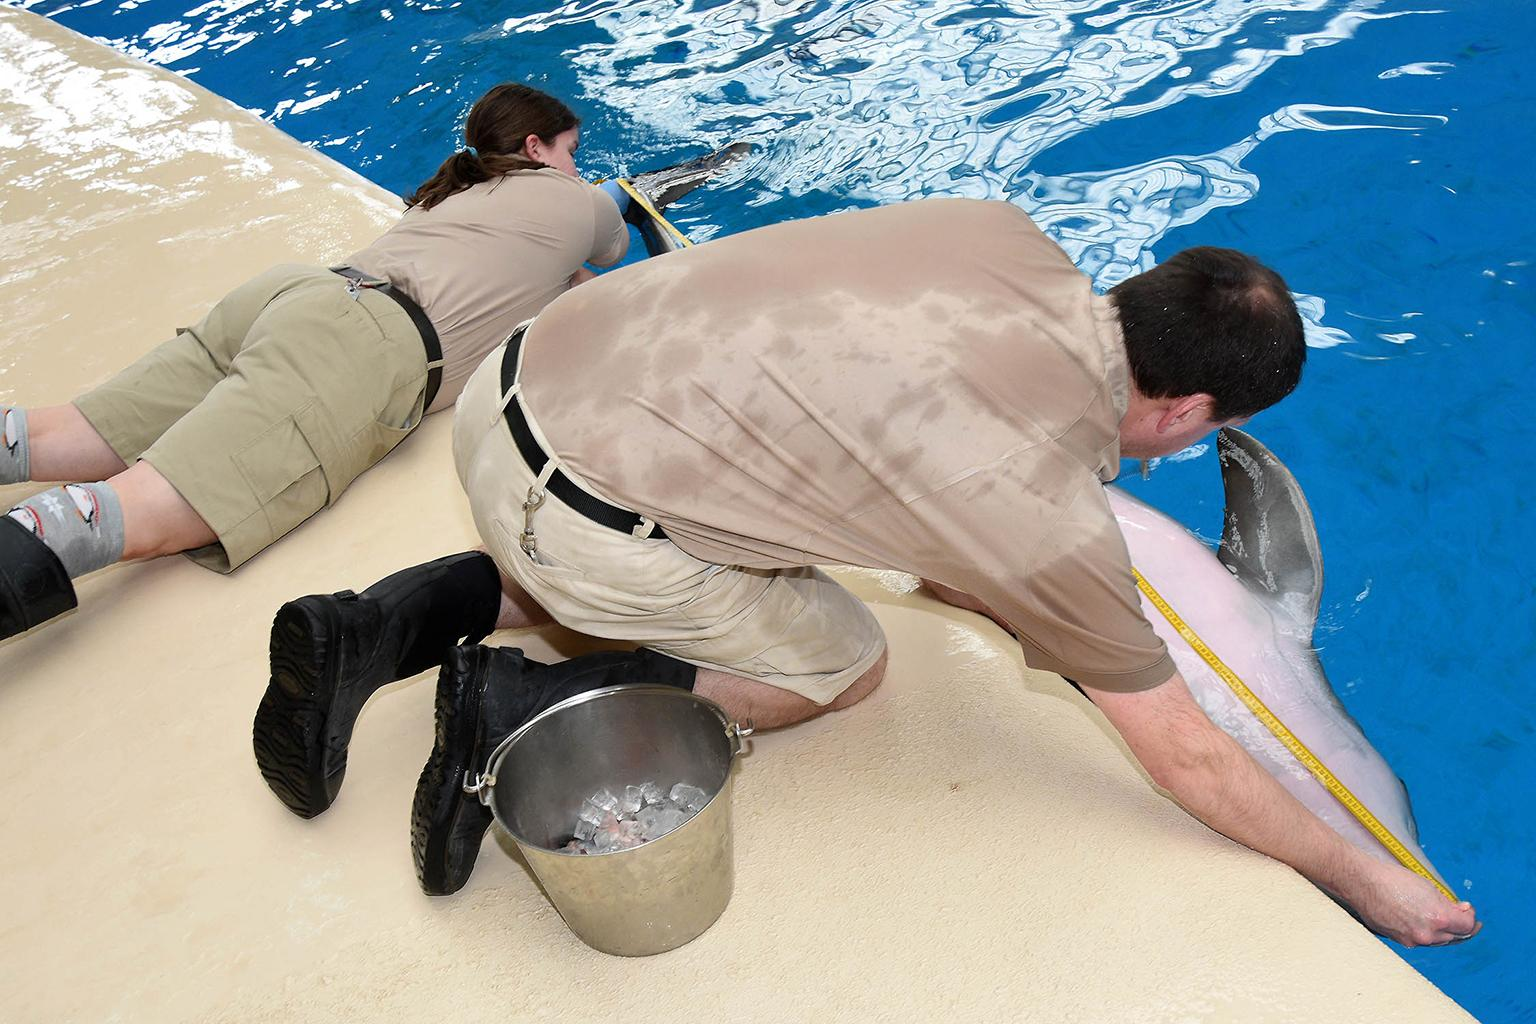 Brookfield Zoo animal care specialists measure the length of a dolphin. (Courtesy Chicago Zoological Society)